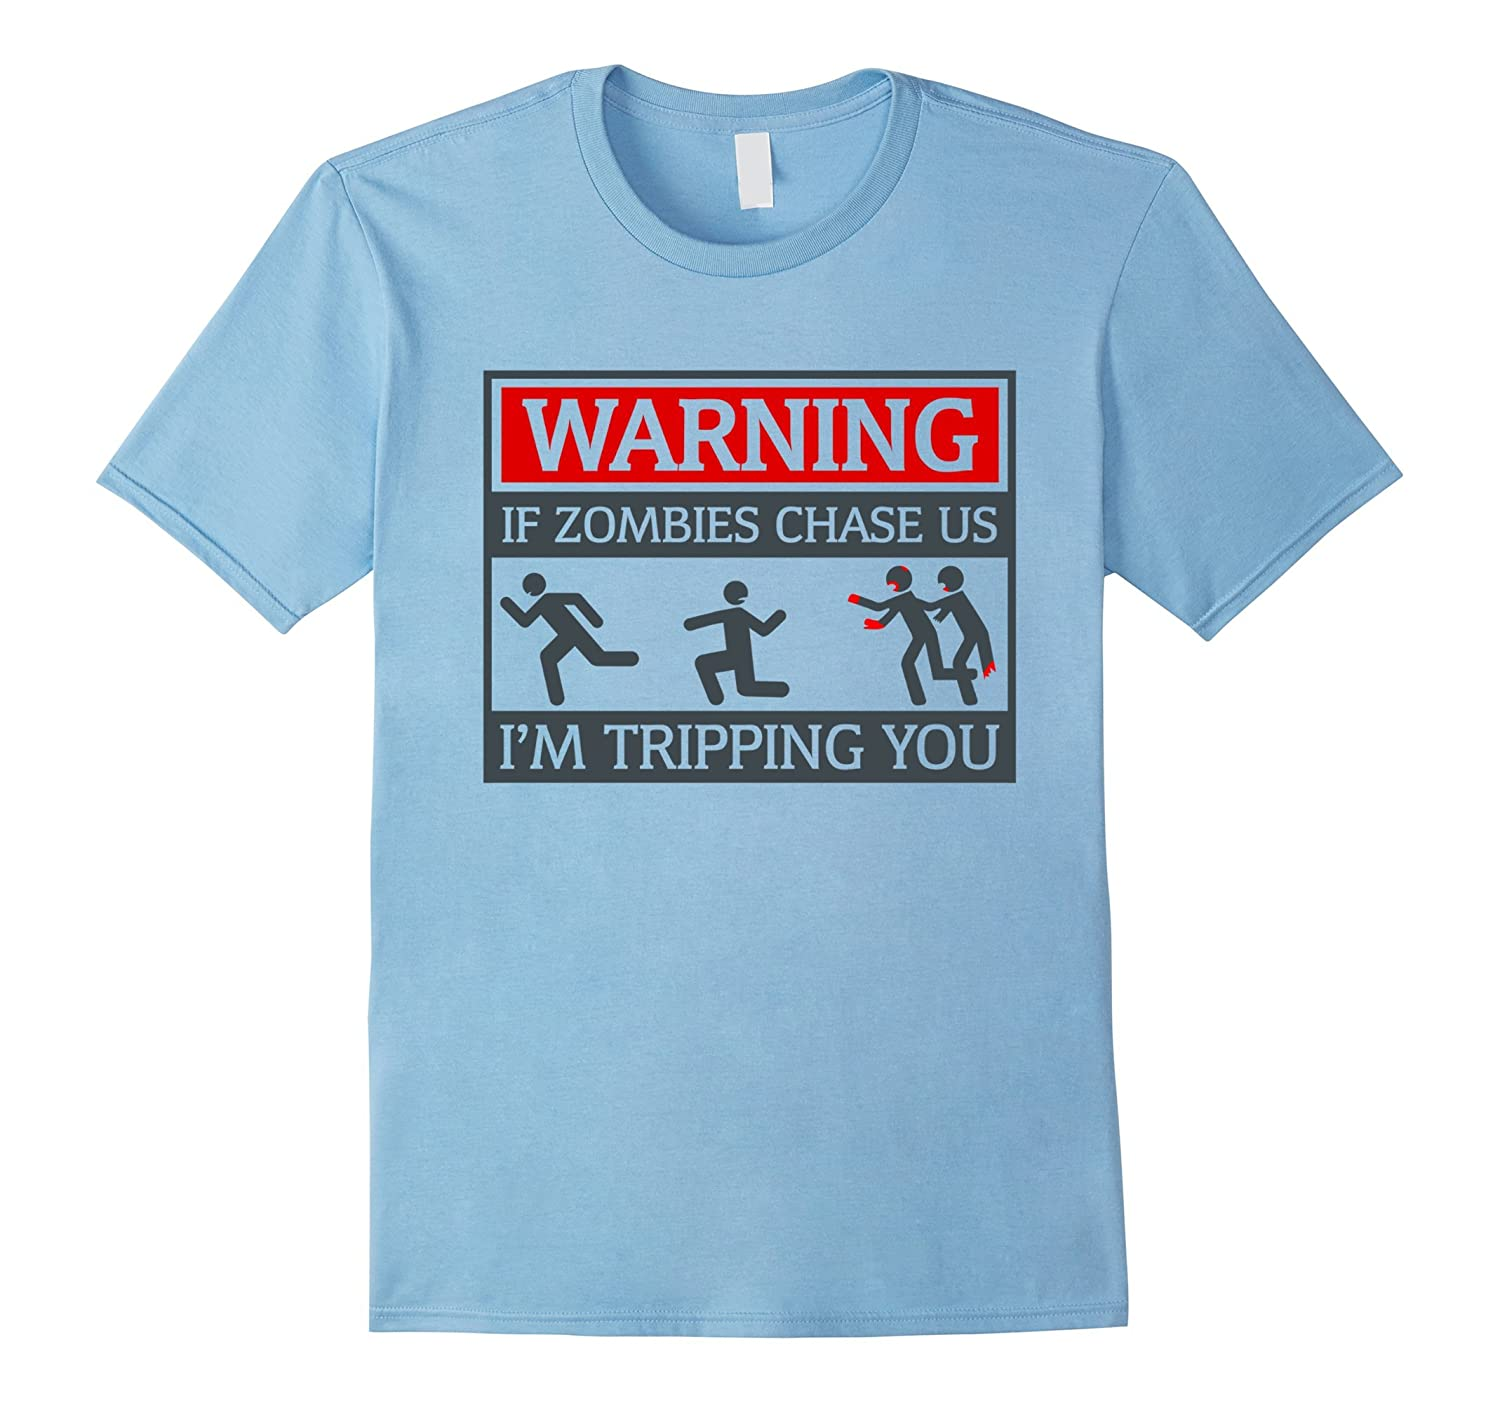 Tripping You If Zombie Chase Us Shirt Zombie T-shirt-TH